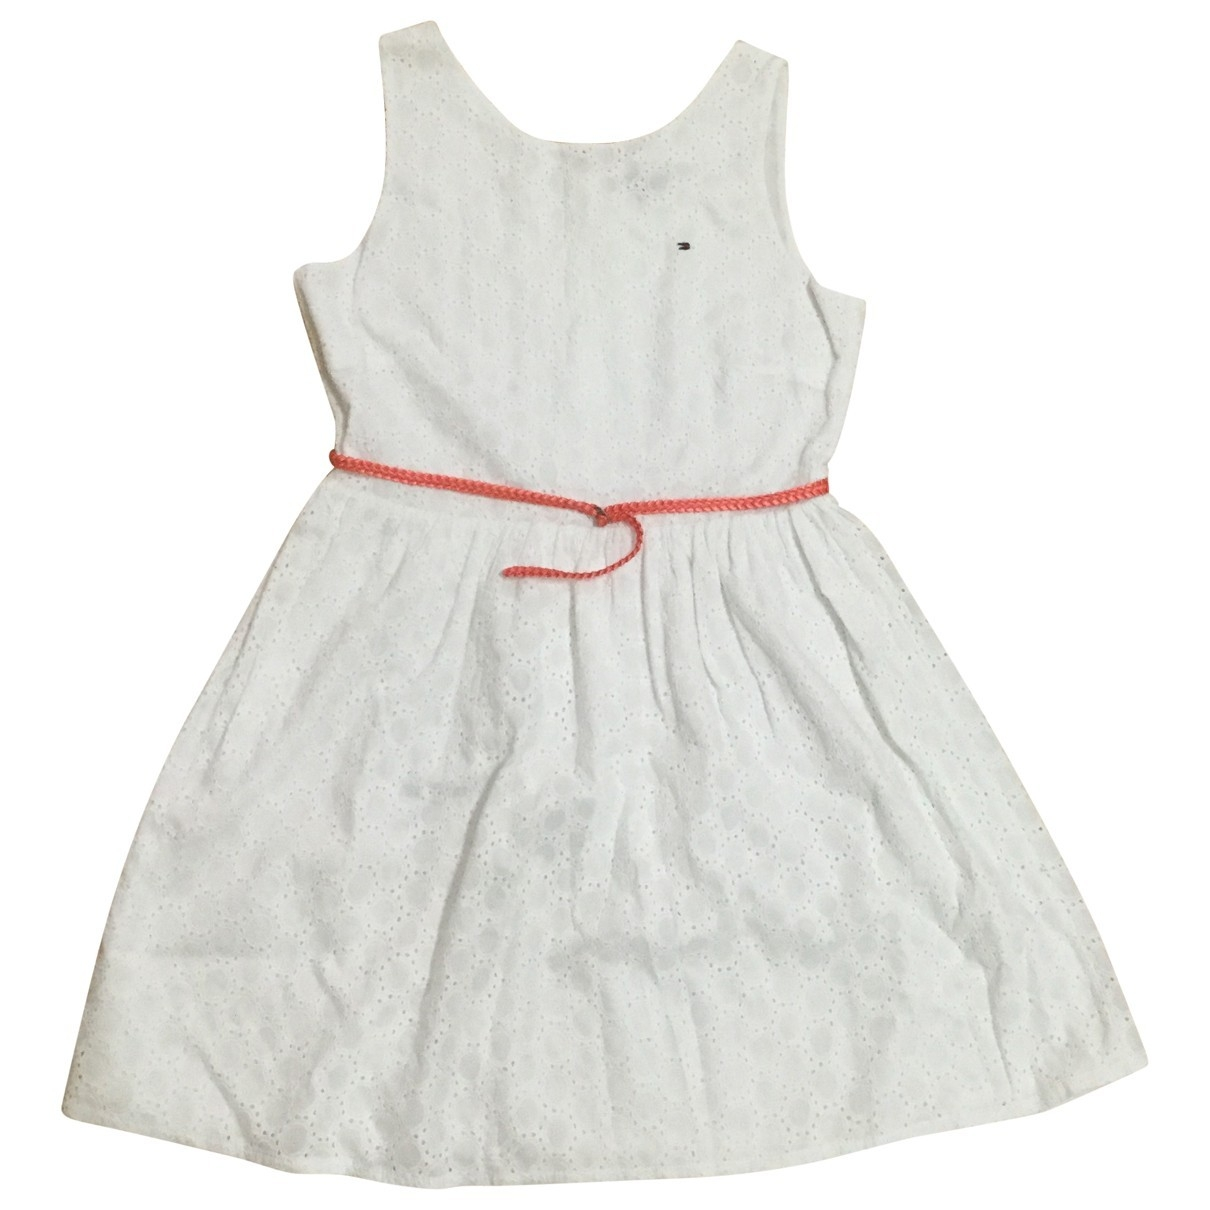 Tommy Hilfiger \N White Lace dress for Women 36 FR